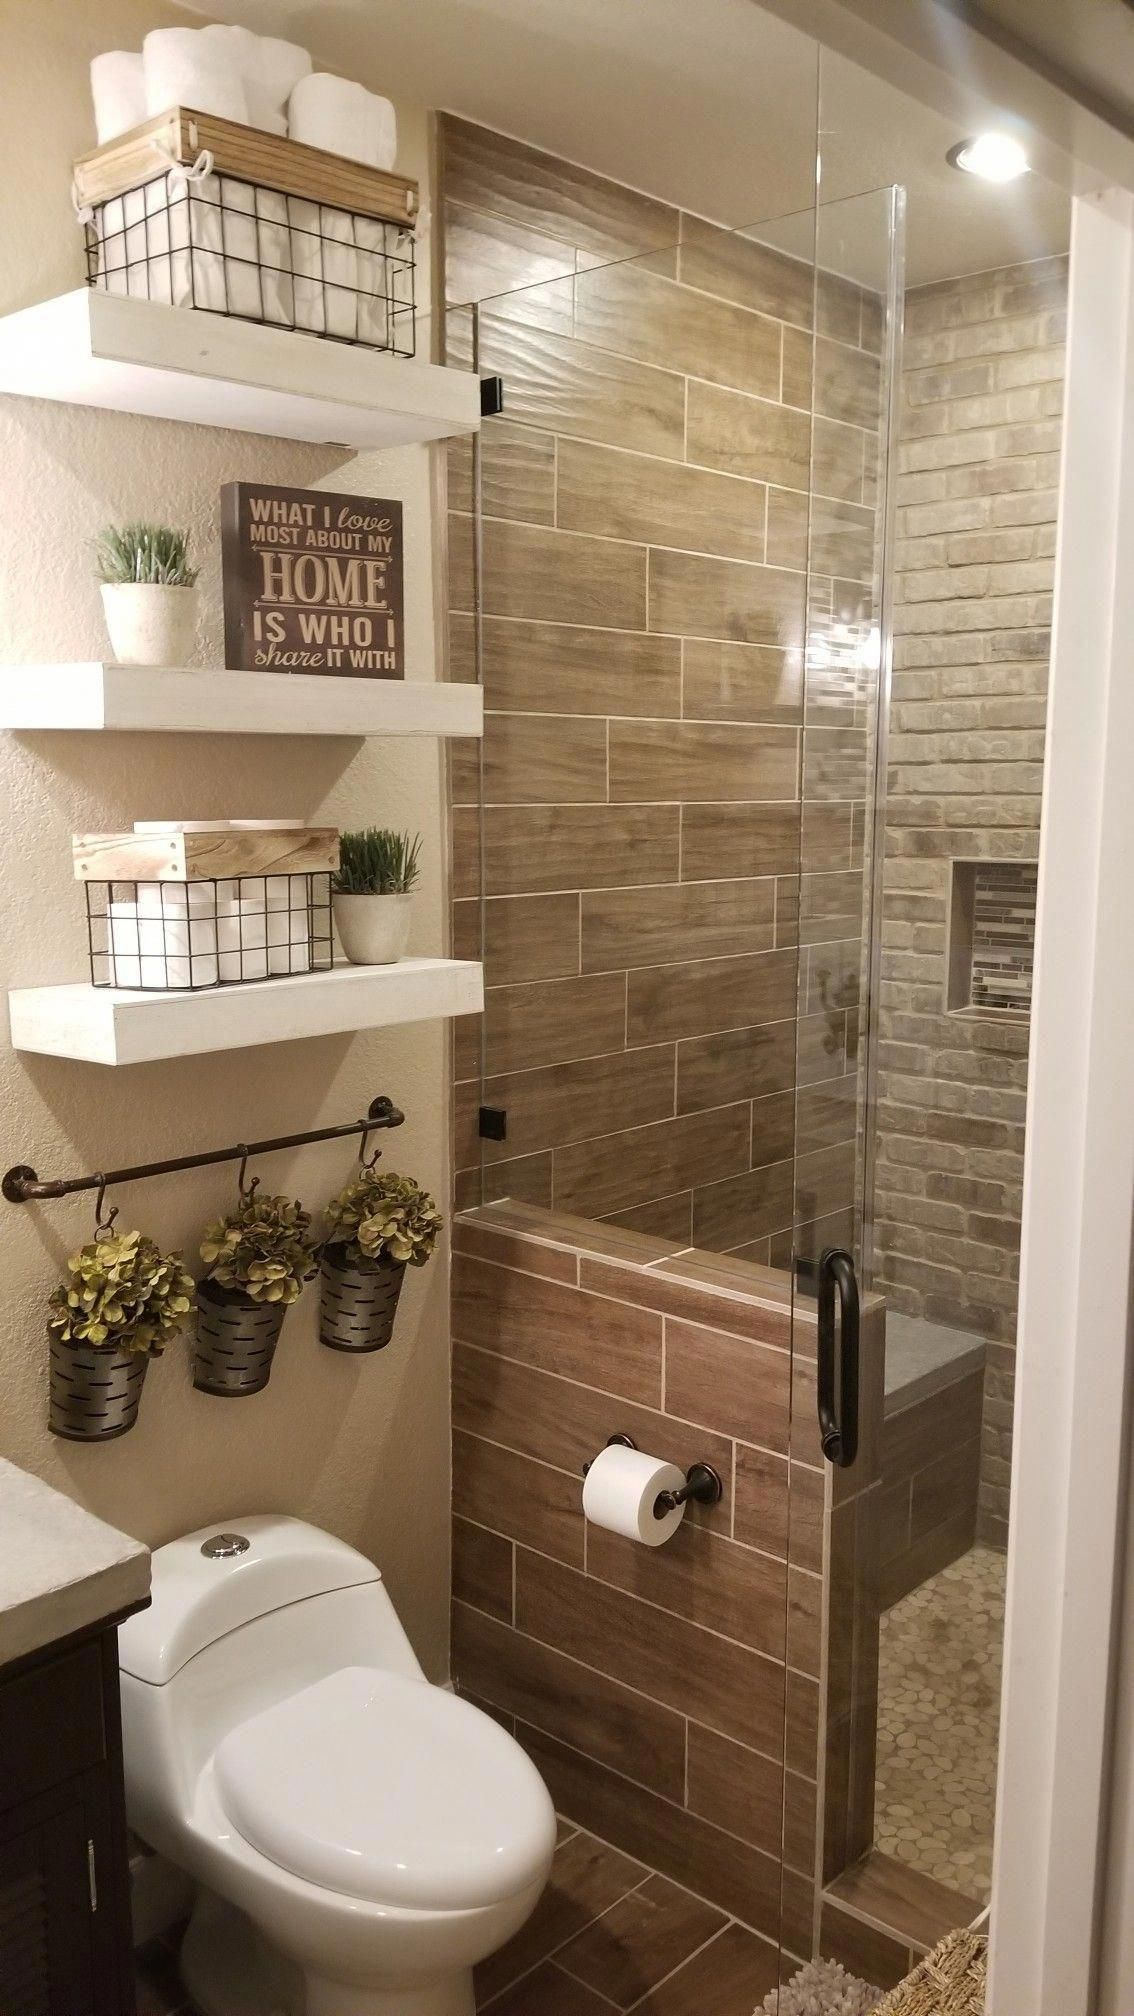 Whether You Are Unhappy With The Total Appearance Of Your Home Or Just The Restroom A Restroom Guest Bathrooms Bathroom Remodel Designs Small Master Bathroom